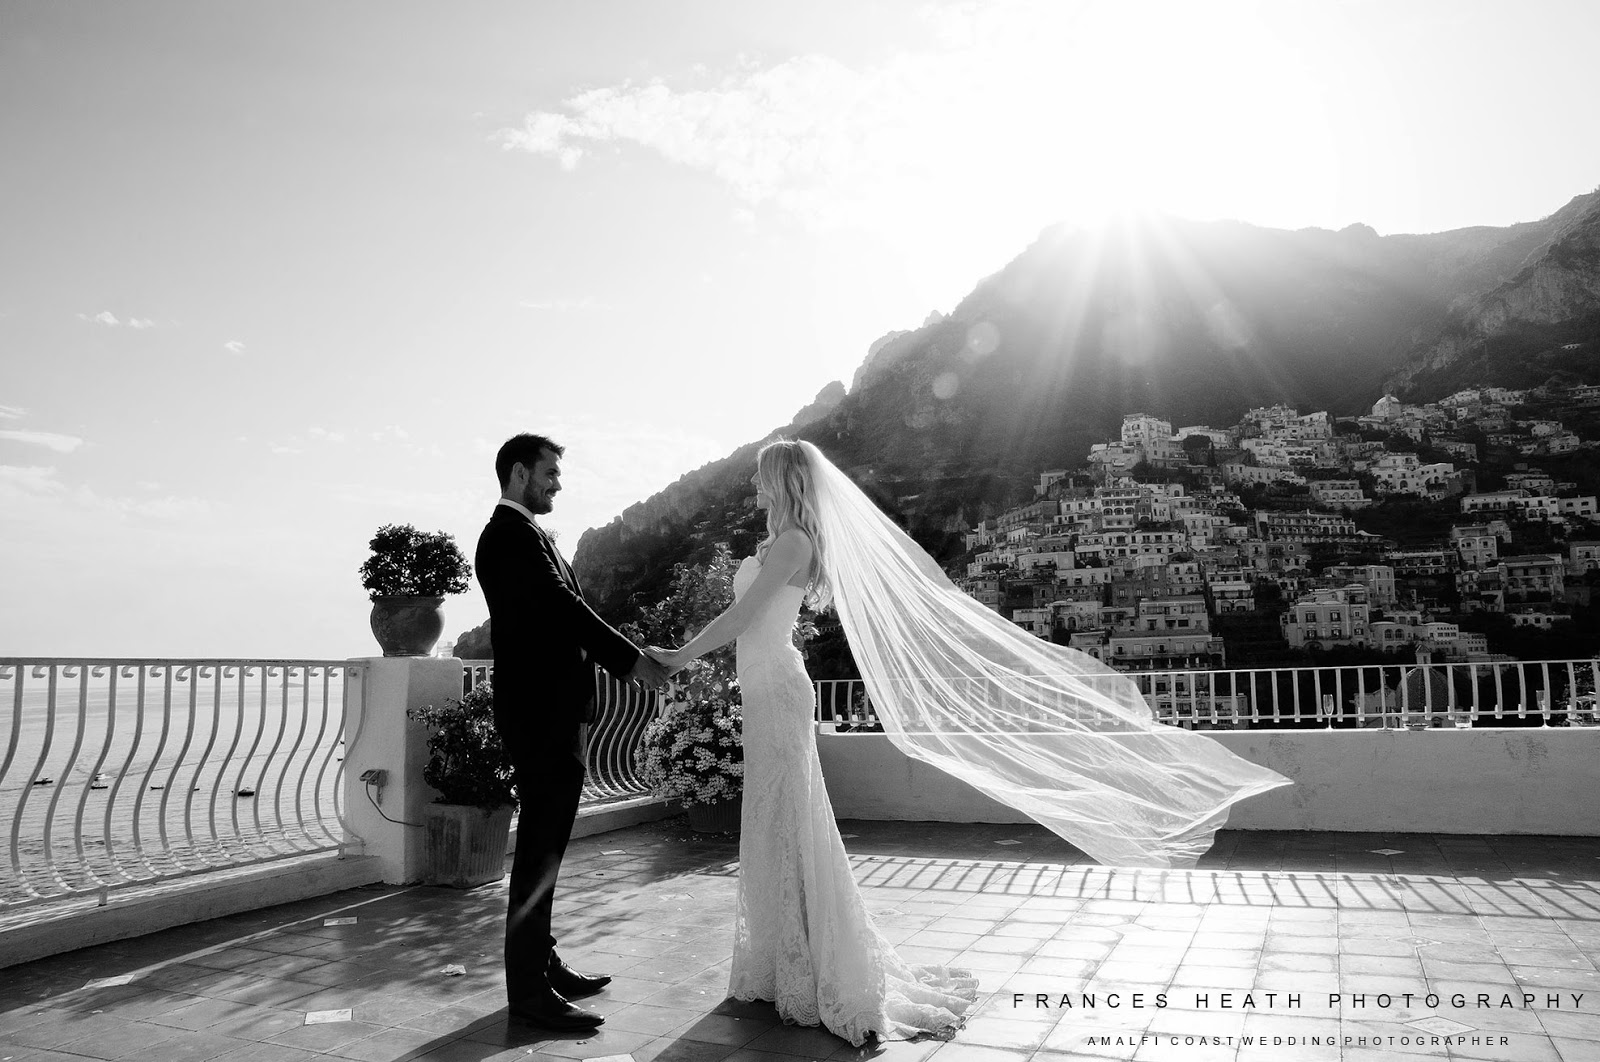 Wedding portrait at Hotel Marincanto in Positano